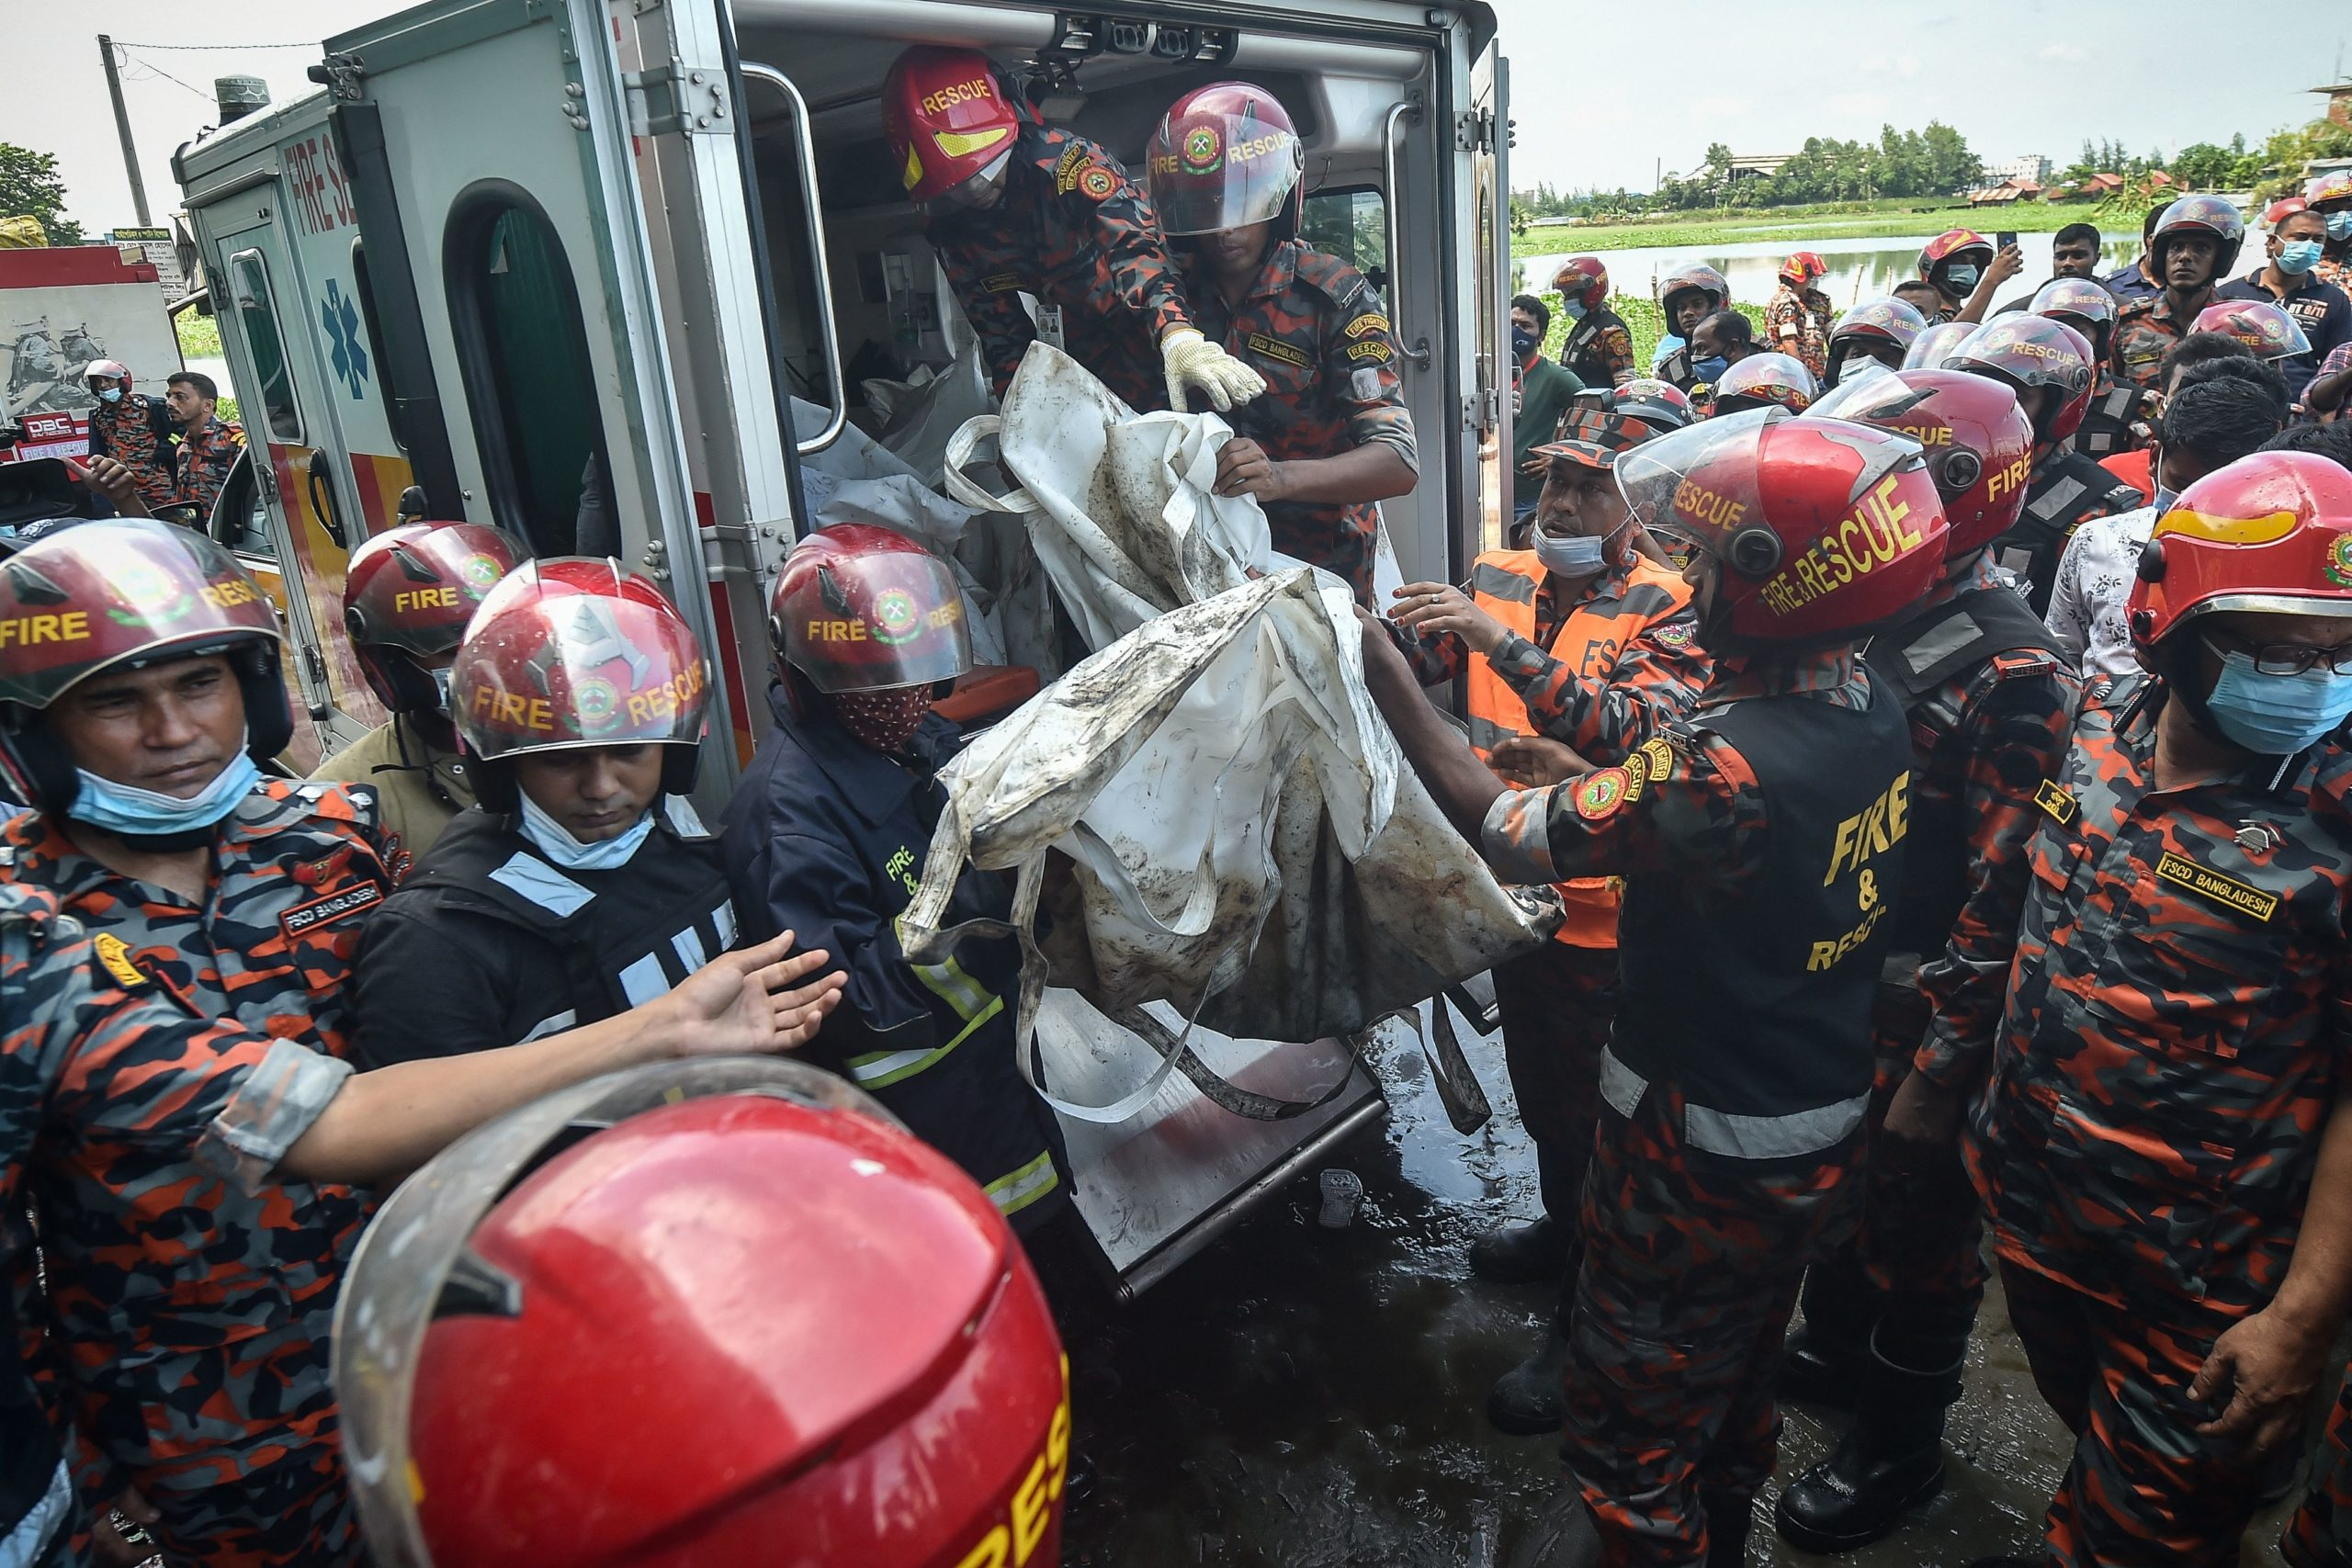 Firefighters and rescue workers recover bodies of the deceased who died in the fire. (Photo by MUNIR UZ ZAMAN/AFP via Getty Images)